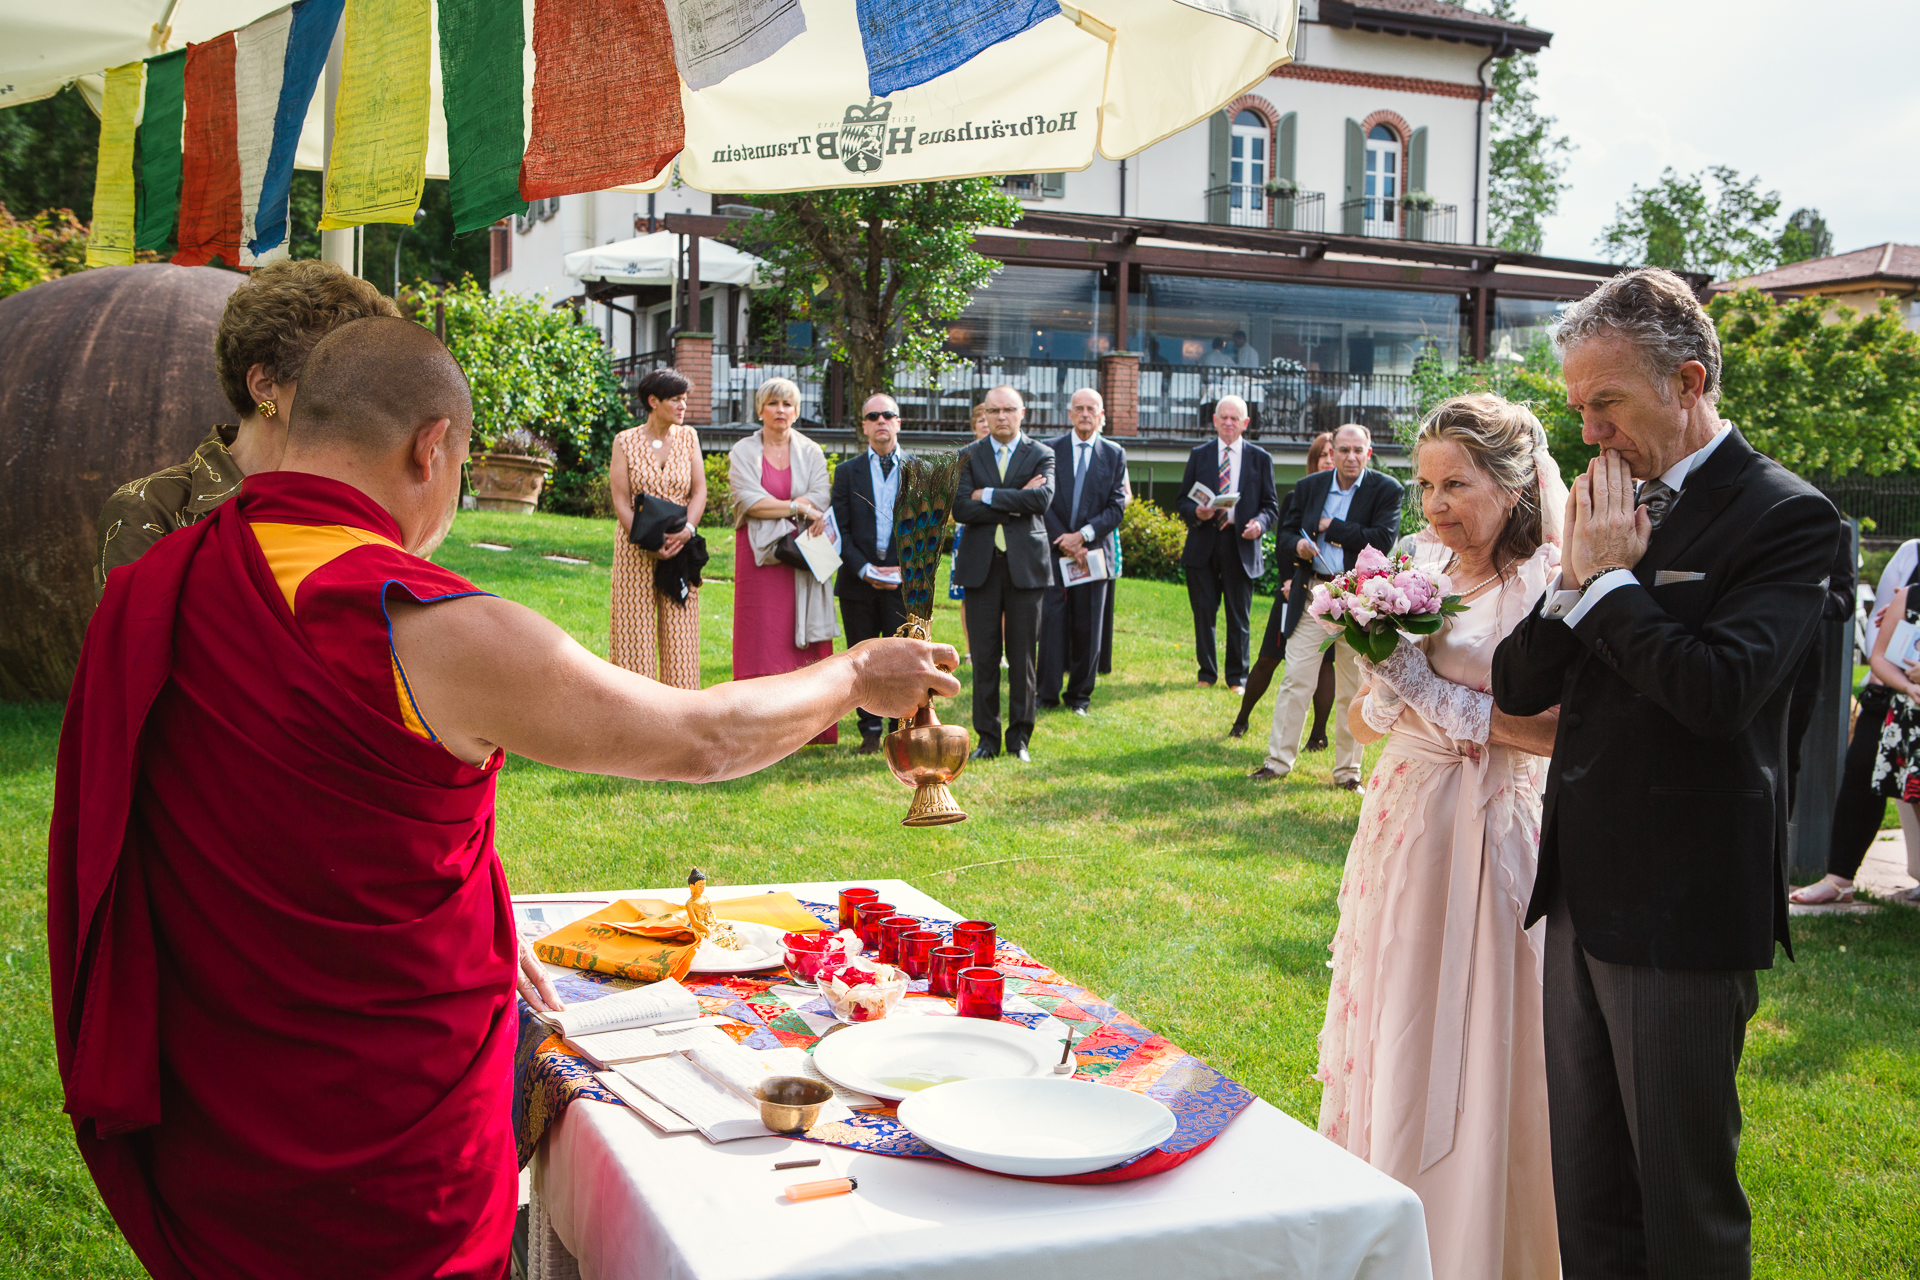 Hotel Ristorante Villa Baroni Elopement Ceremony Image | The bride and groom stand at the altar where the Buddhist monk pours oils